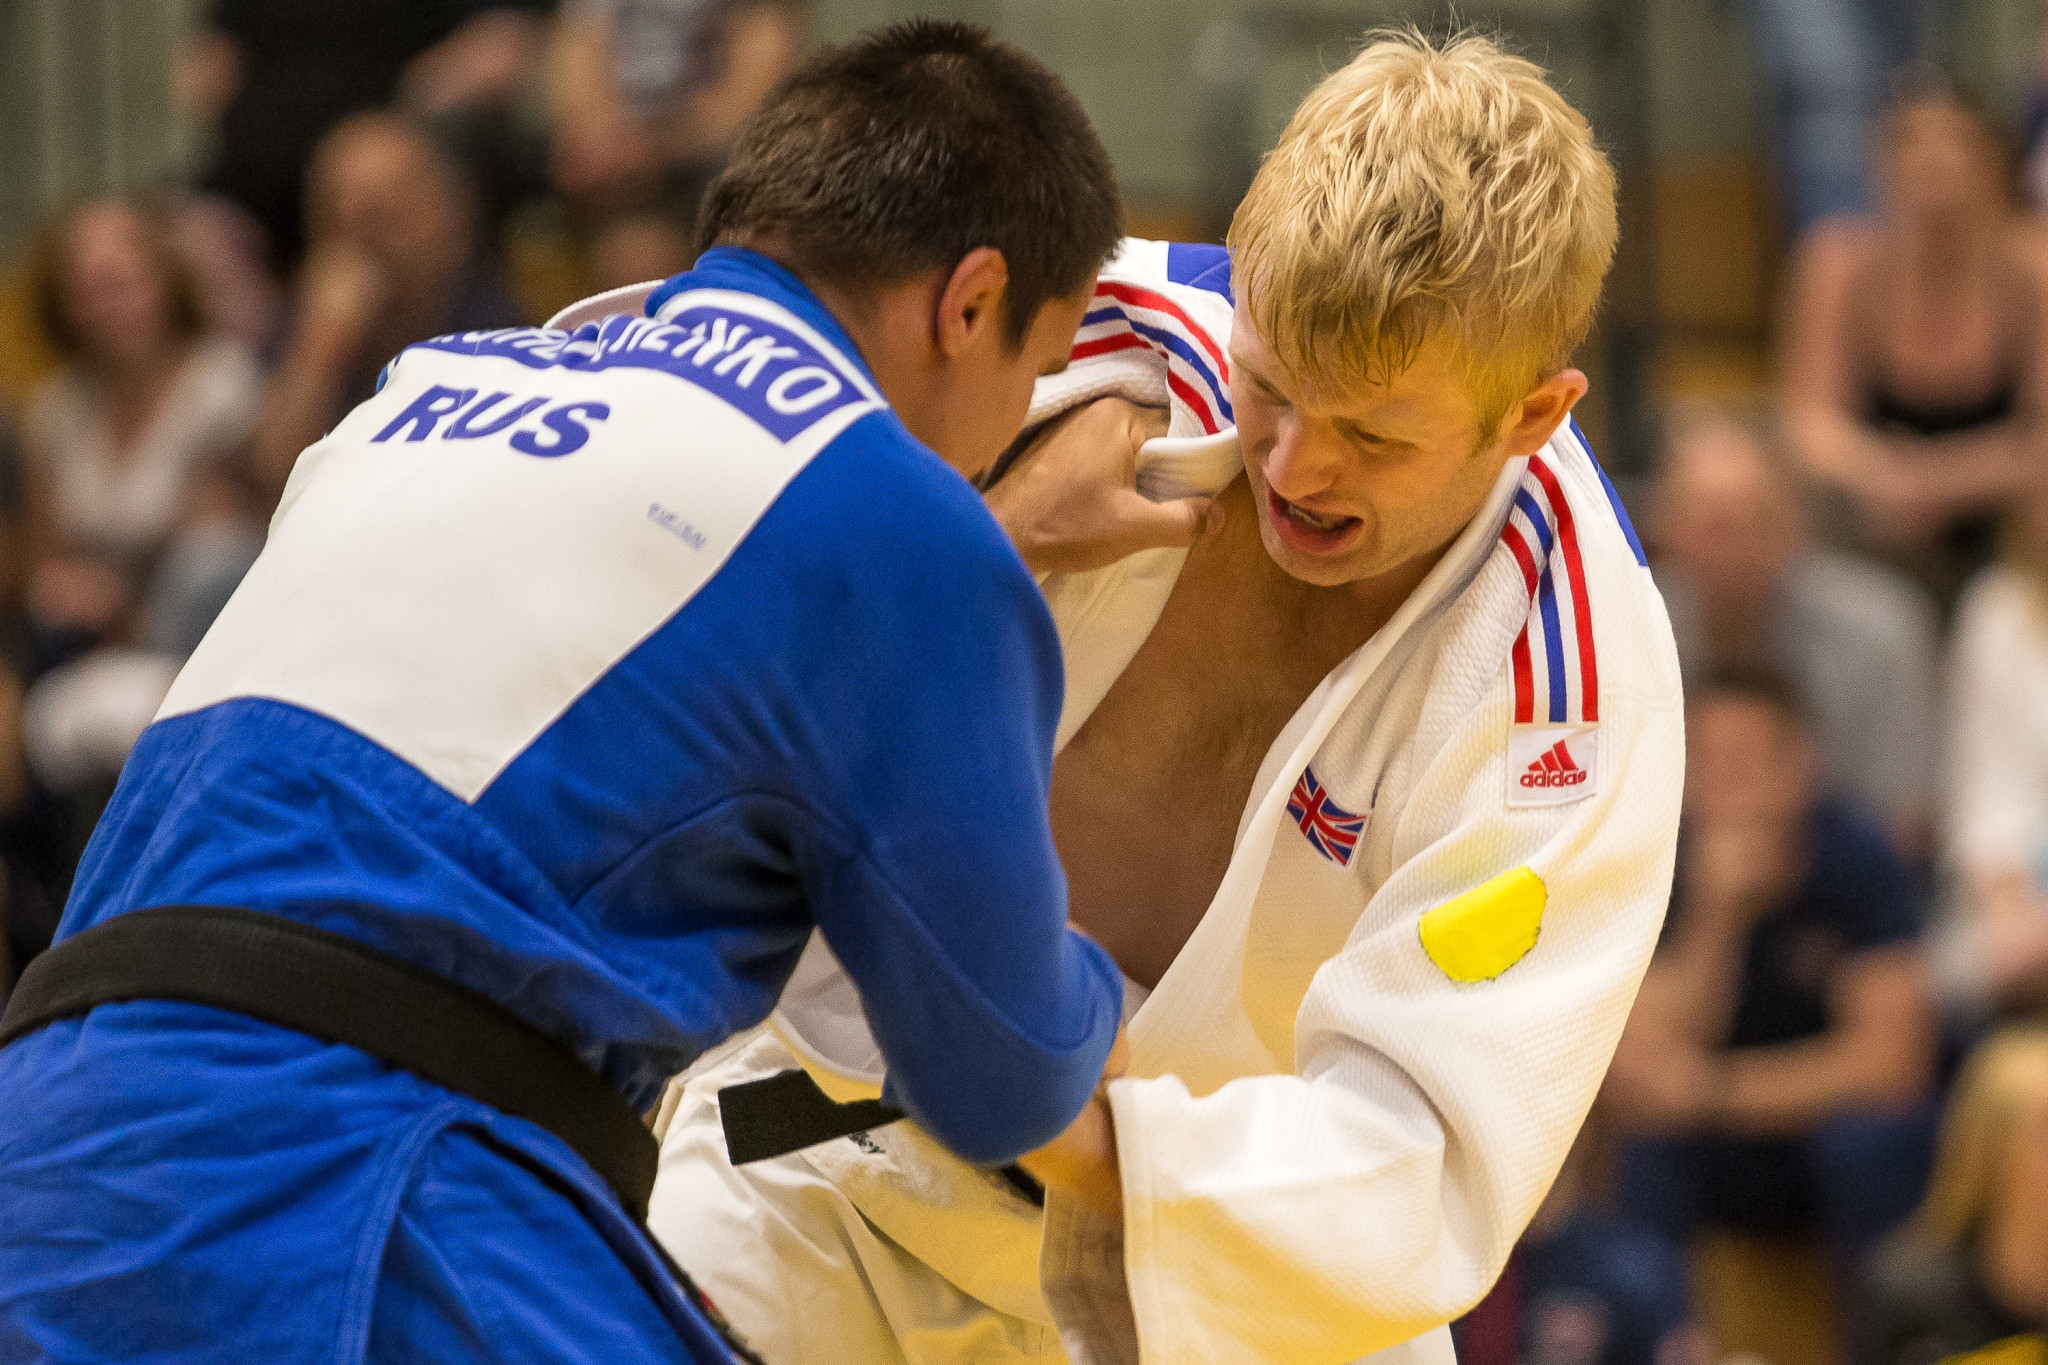 British Judo have named a team of eight athletes including five Paralympians, for the 2018 IBSA Judo World Championships ©GB Judo